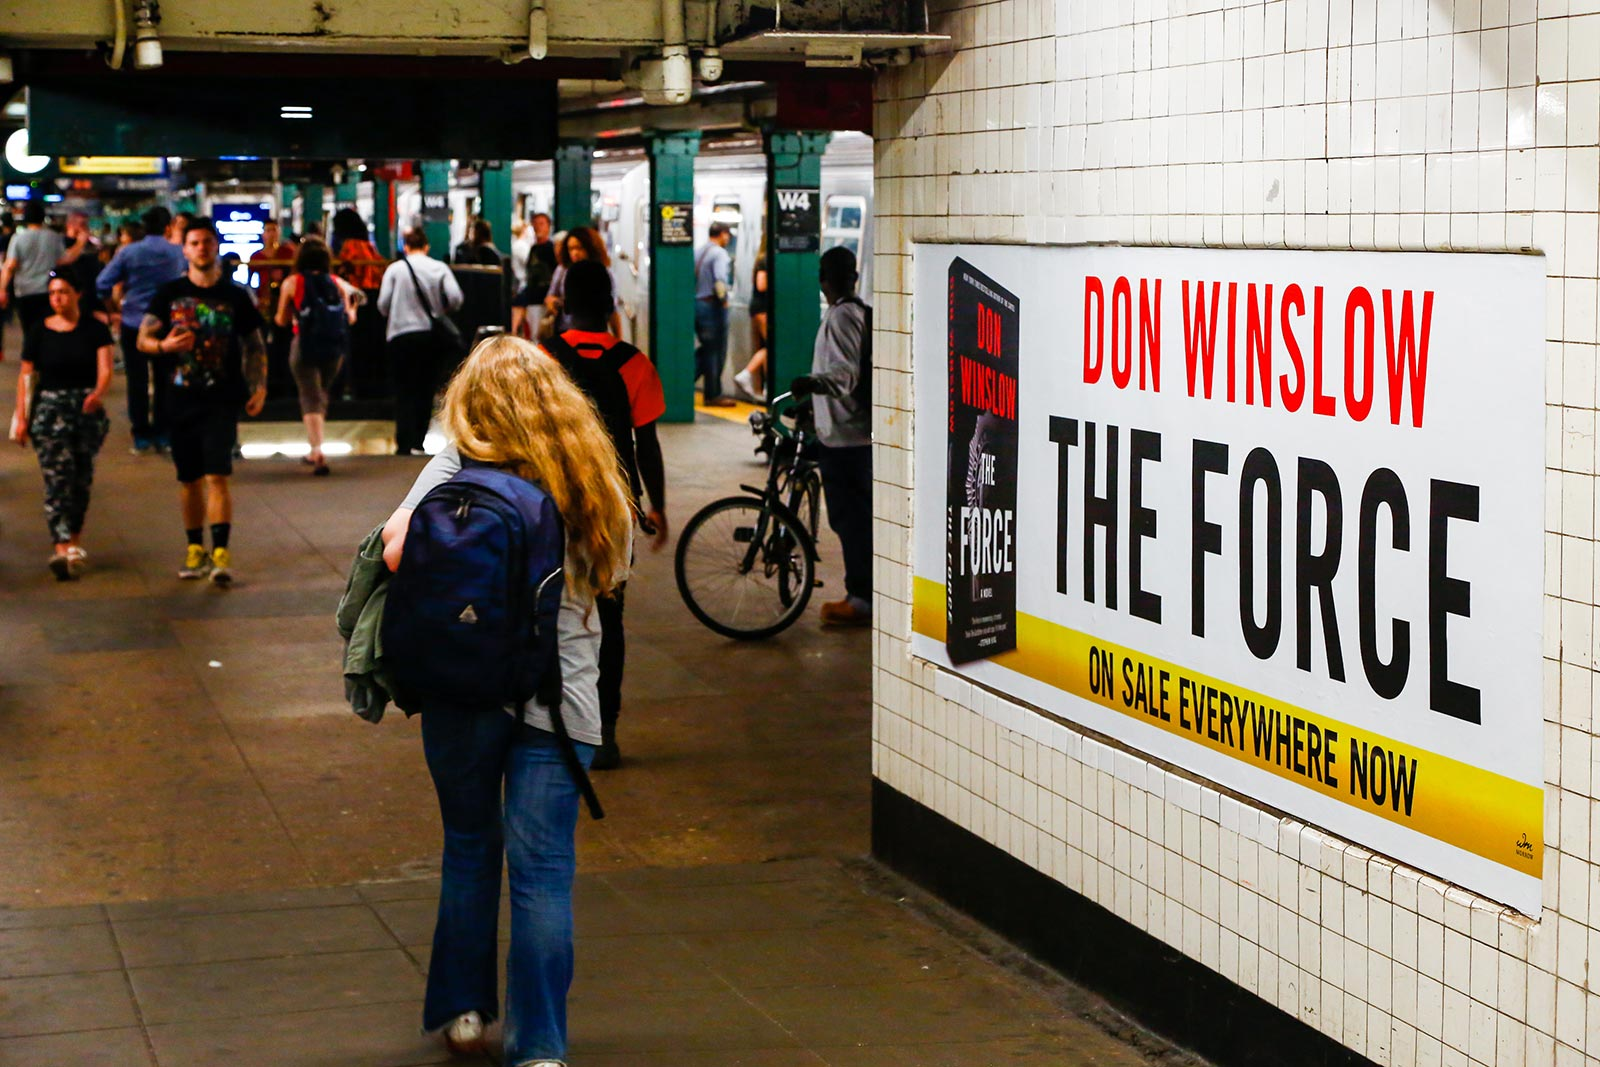 Don Winslow - The Force - W4th Station - Posters in Corridor